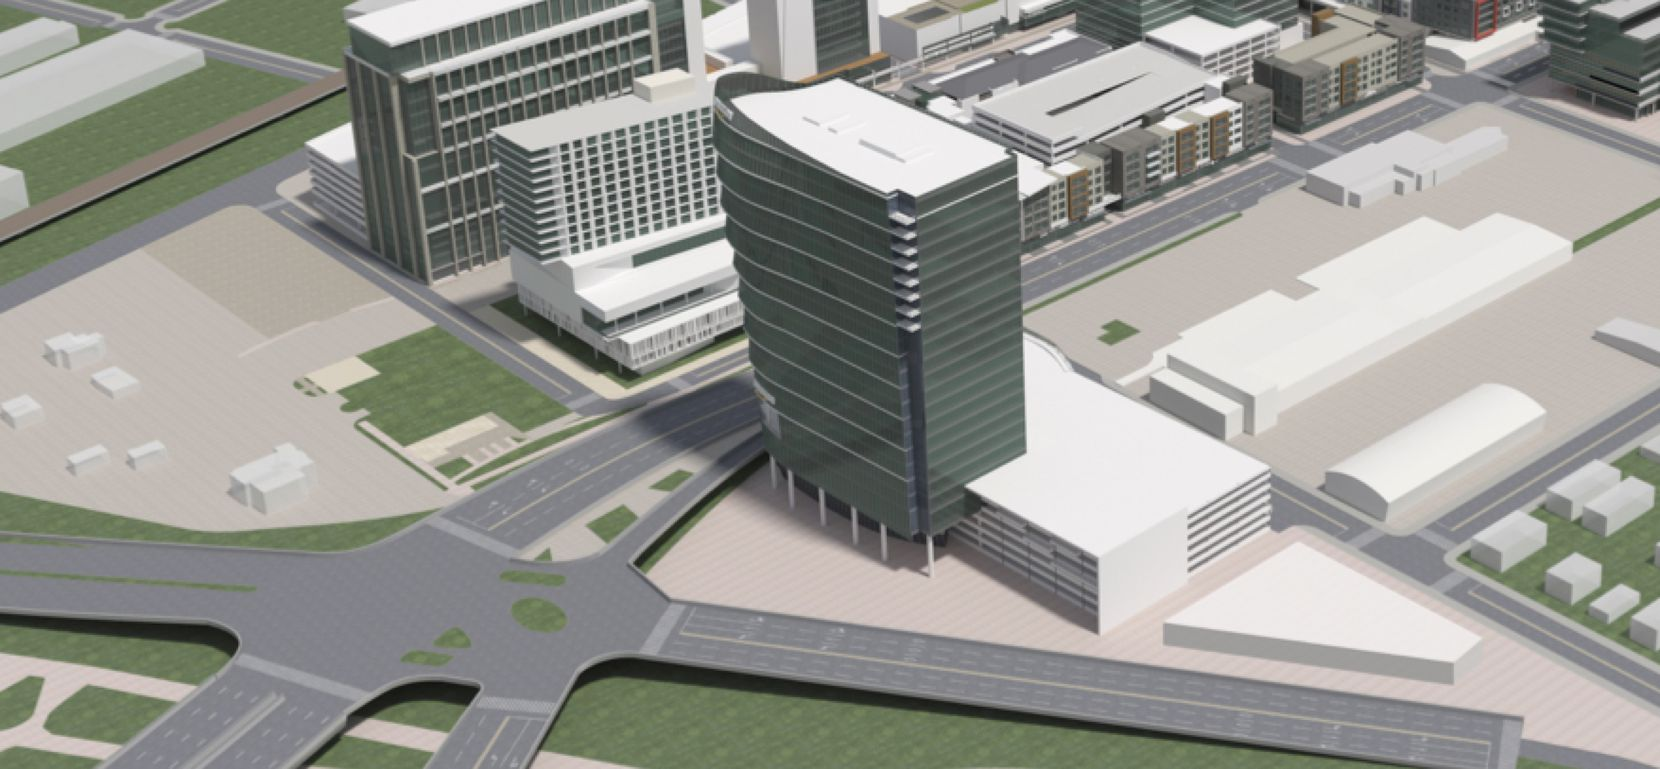 One of the buildings planned at Trinity Groves is a 400-foot-tall office tower overlooking the Trinity River.